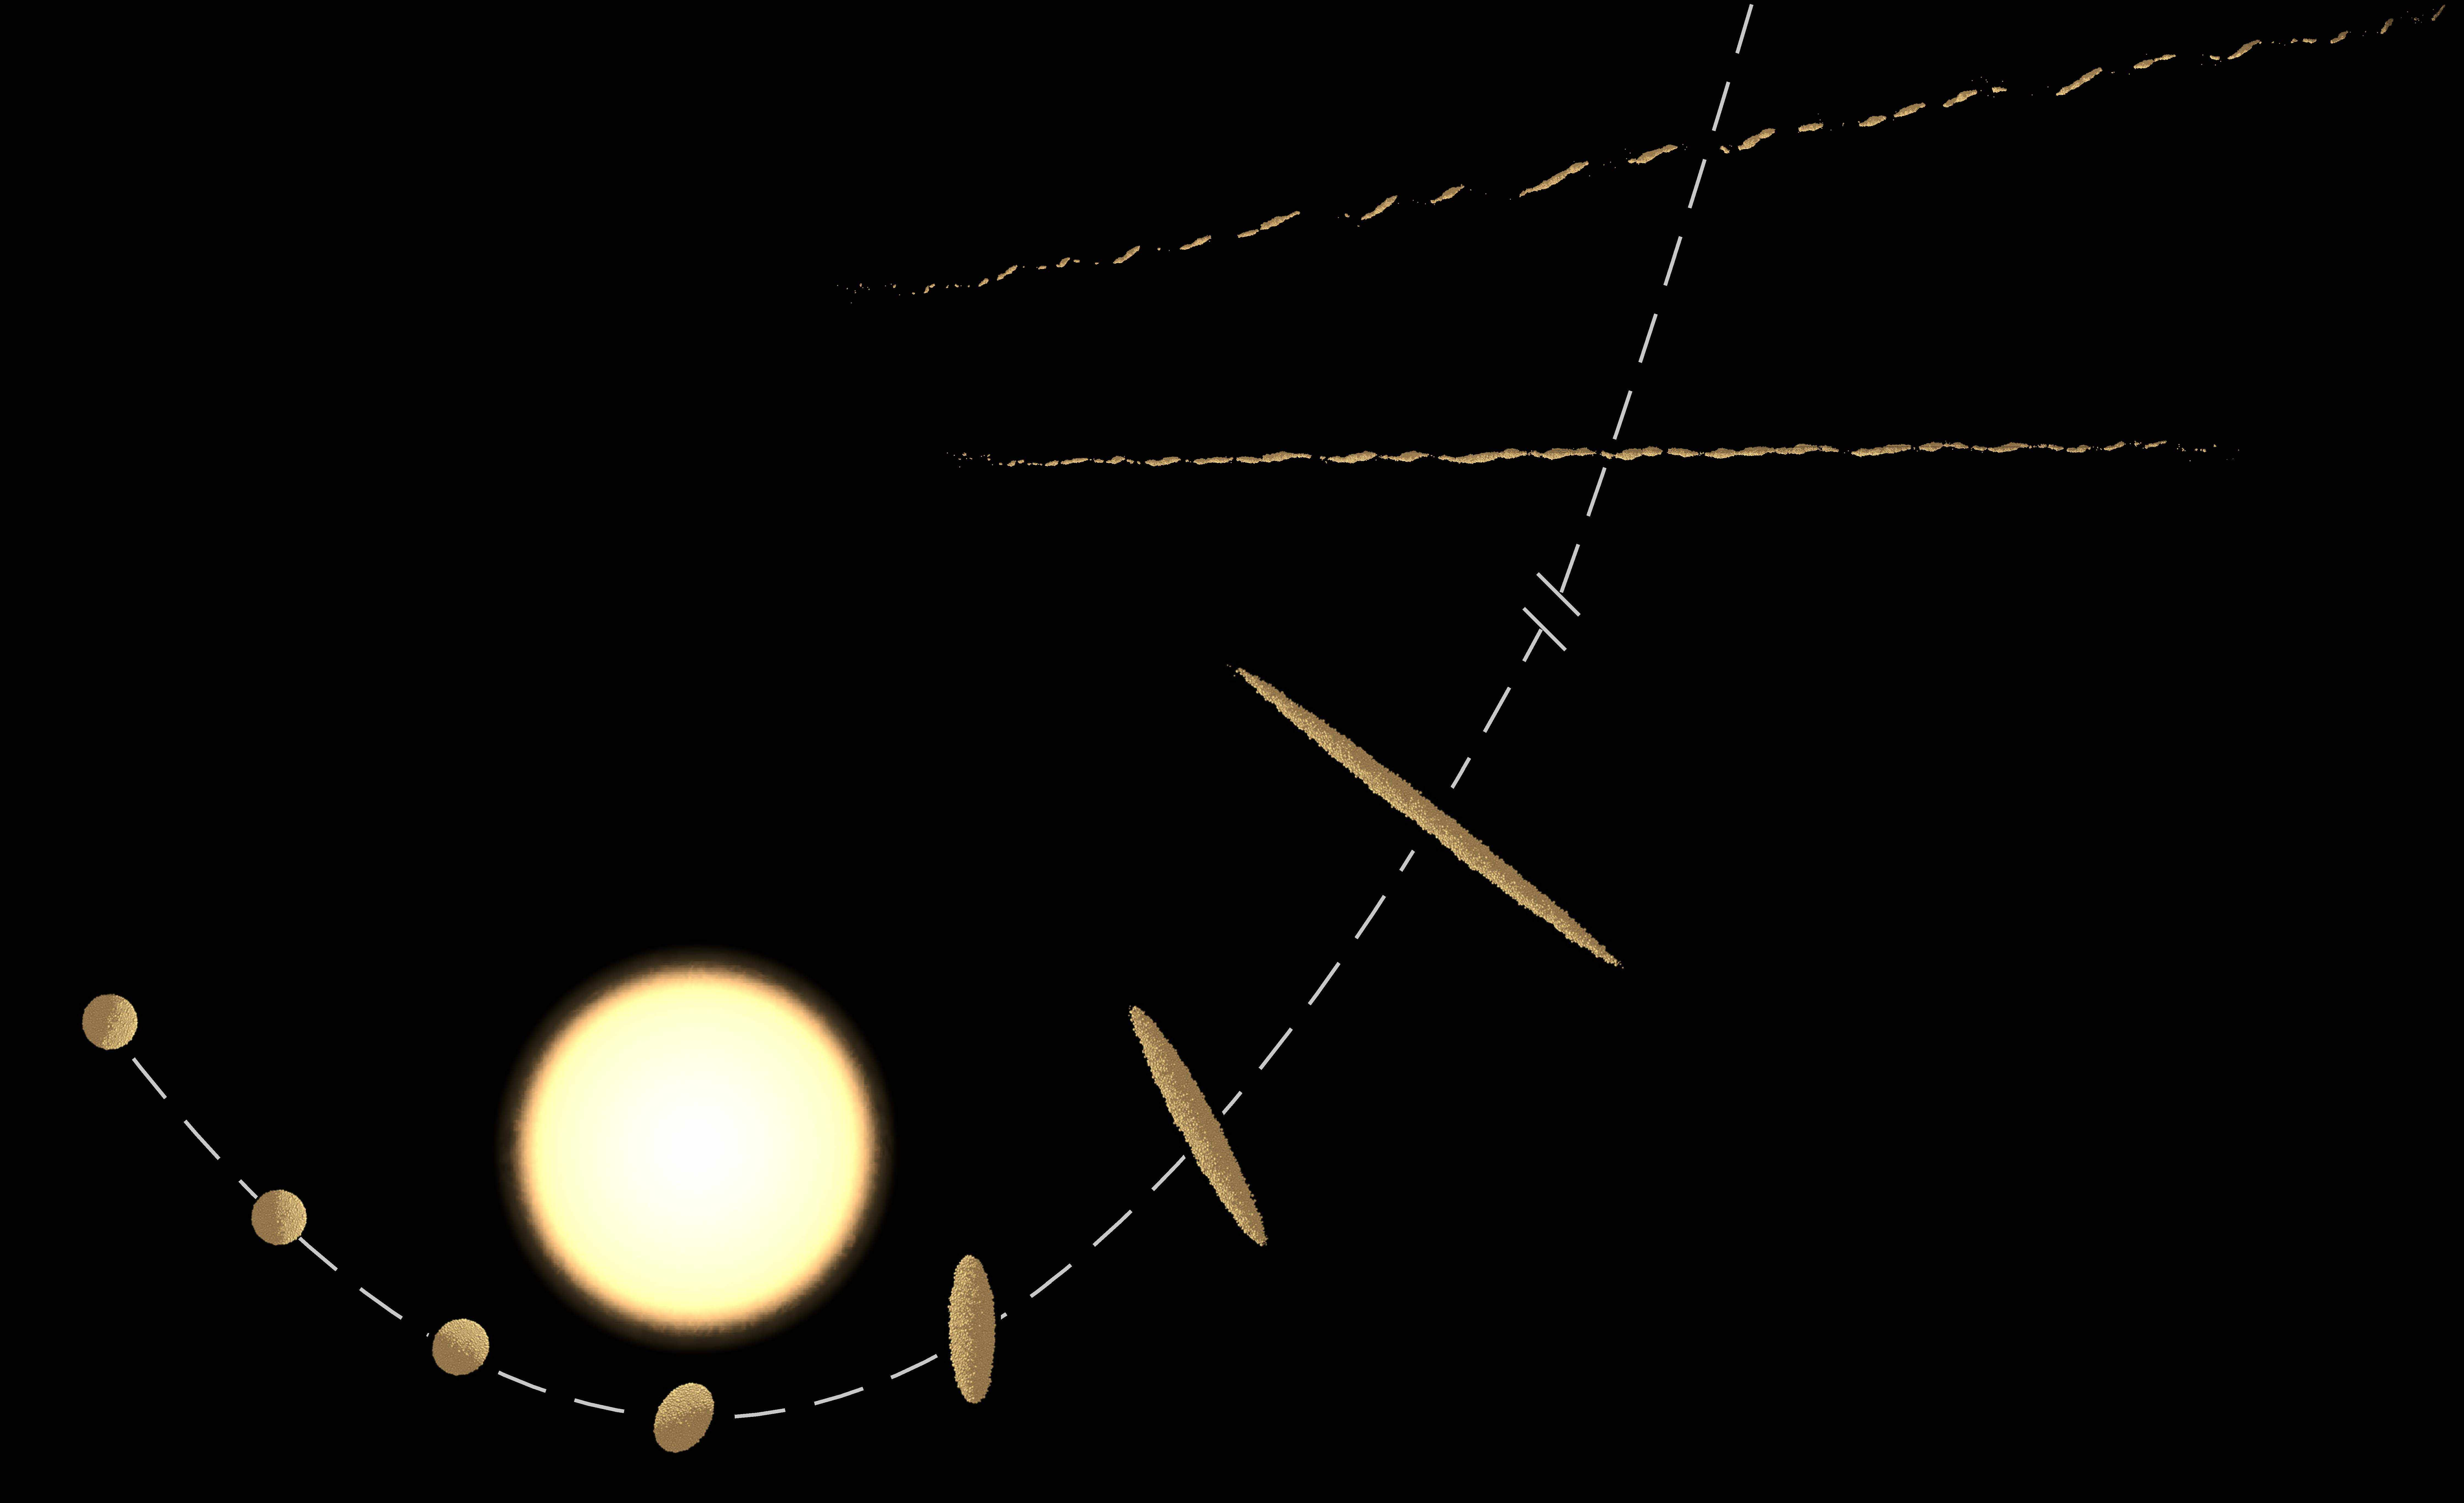 Illustration of stellar tidal disruption processes